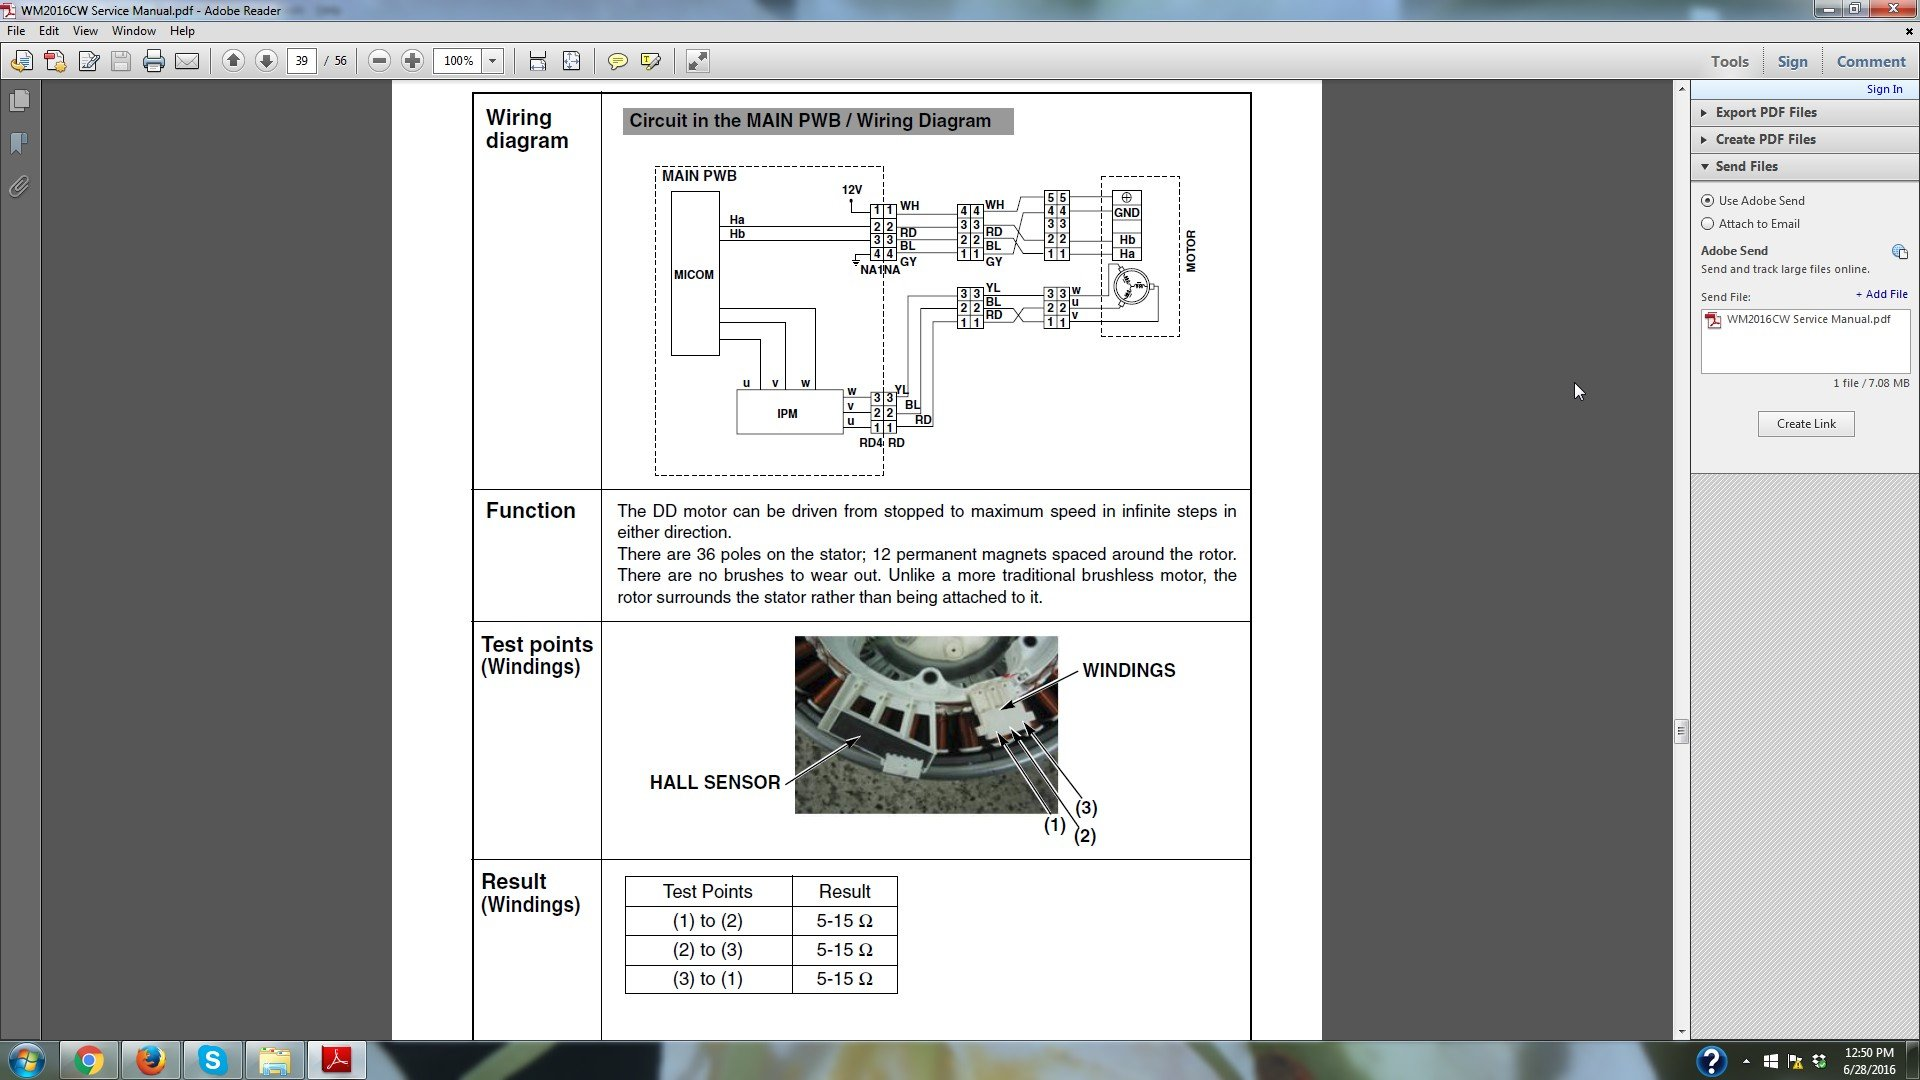 How do you test the stator and rotor on a LG washing machine